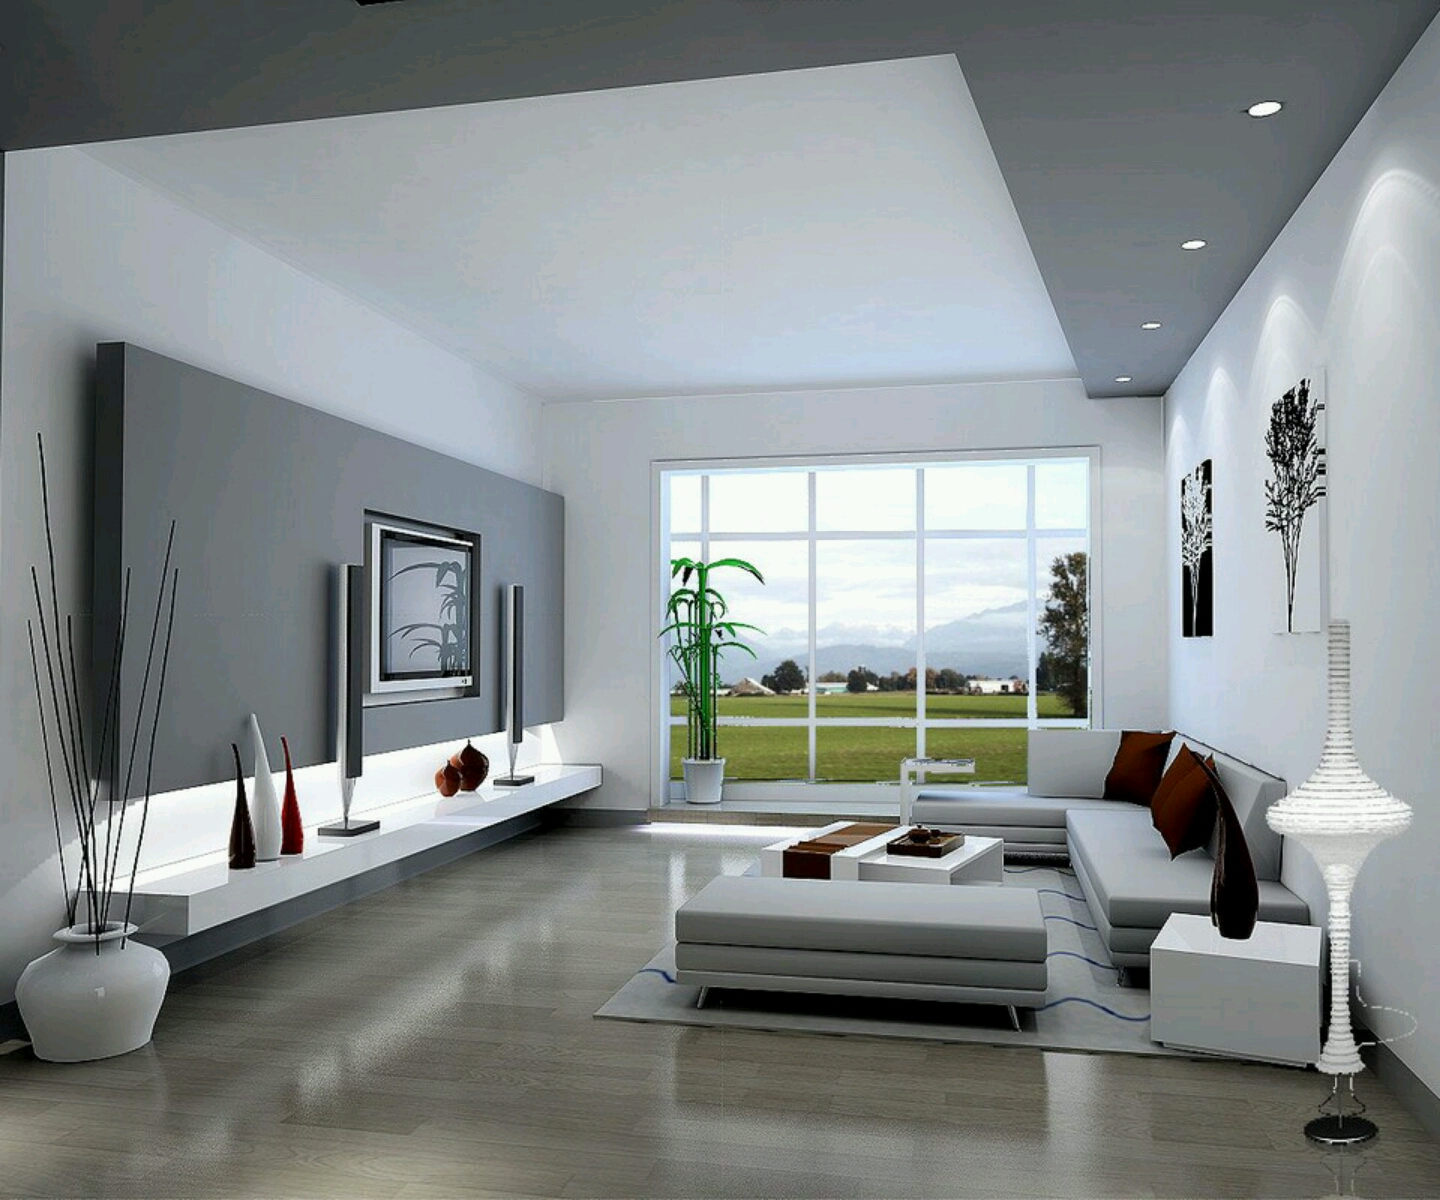 New home designs latest modern living rooms interior for Interior of living rooms designs